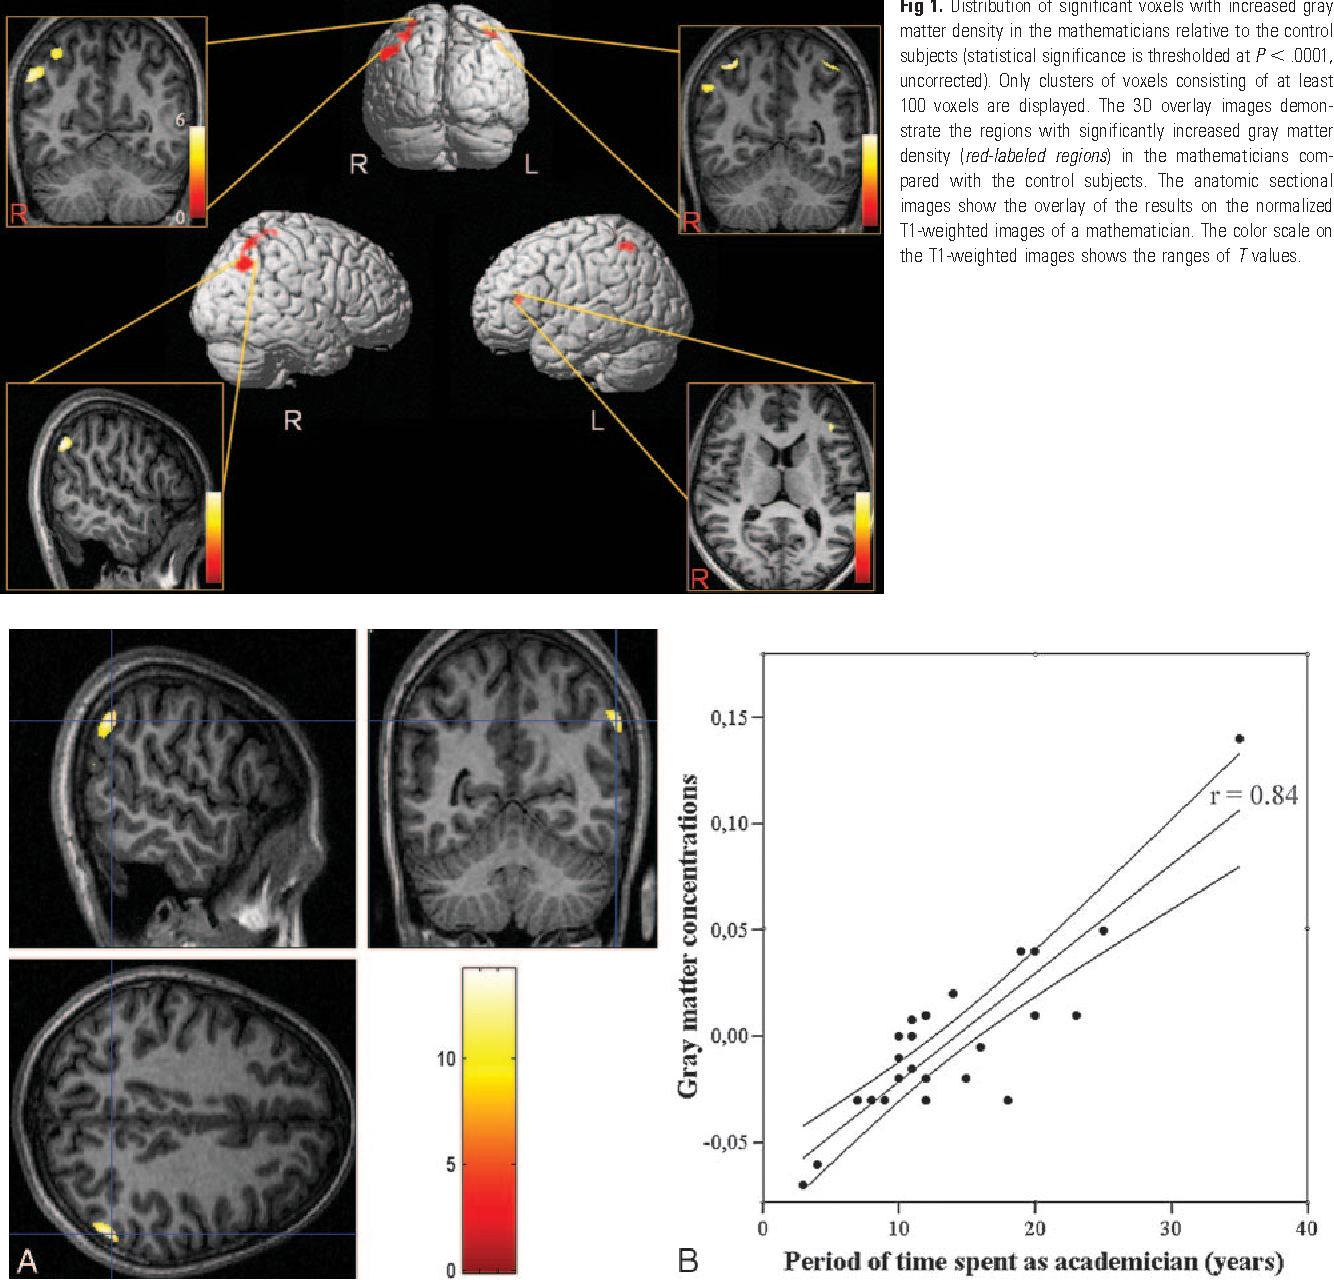 Gray Matter Density Increases During >> Figure 1 From Increased Gray Matter Density In The Parietal